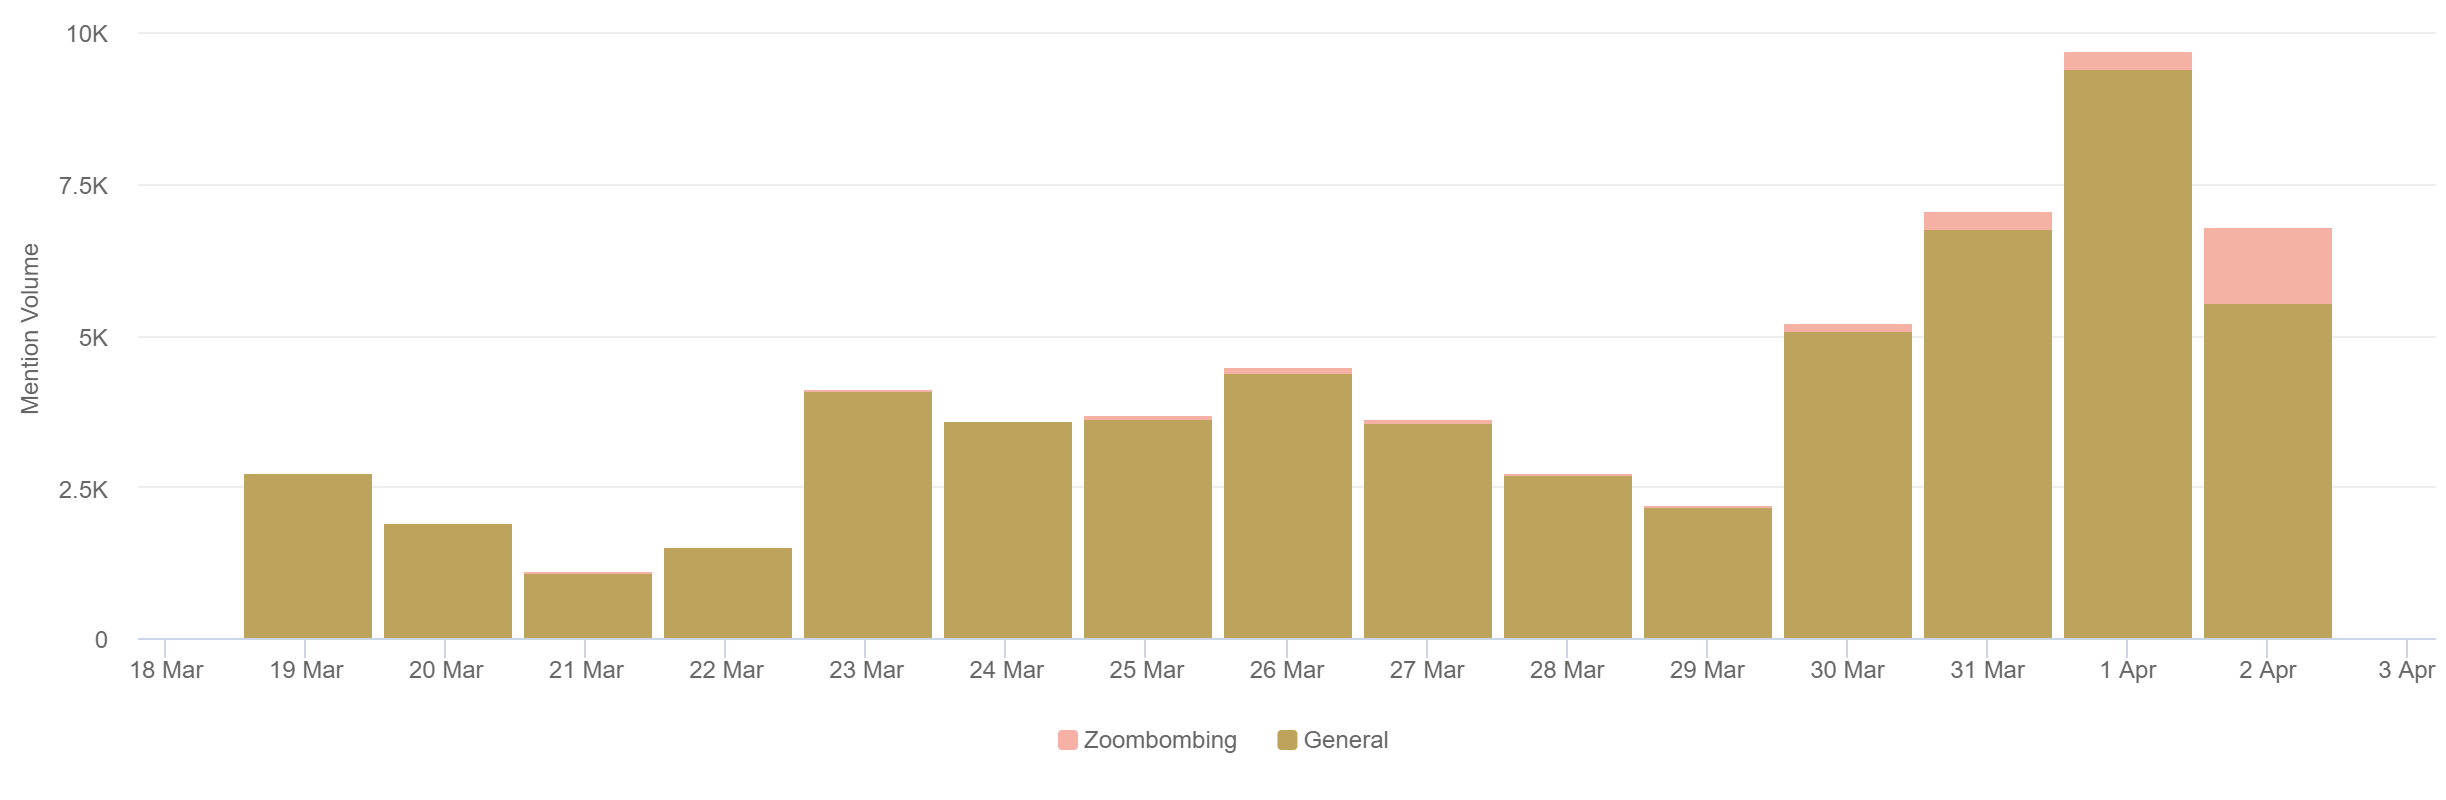 4.3 Volume By Days of general Zoom conversation and Zoombombing conversation